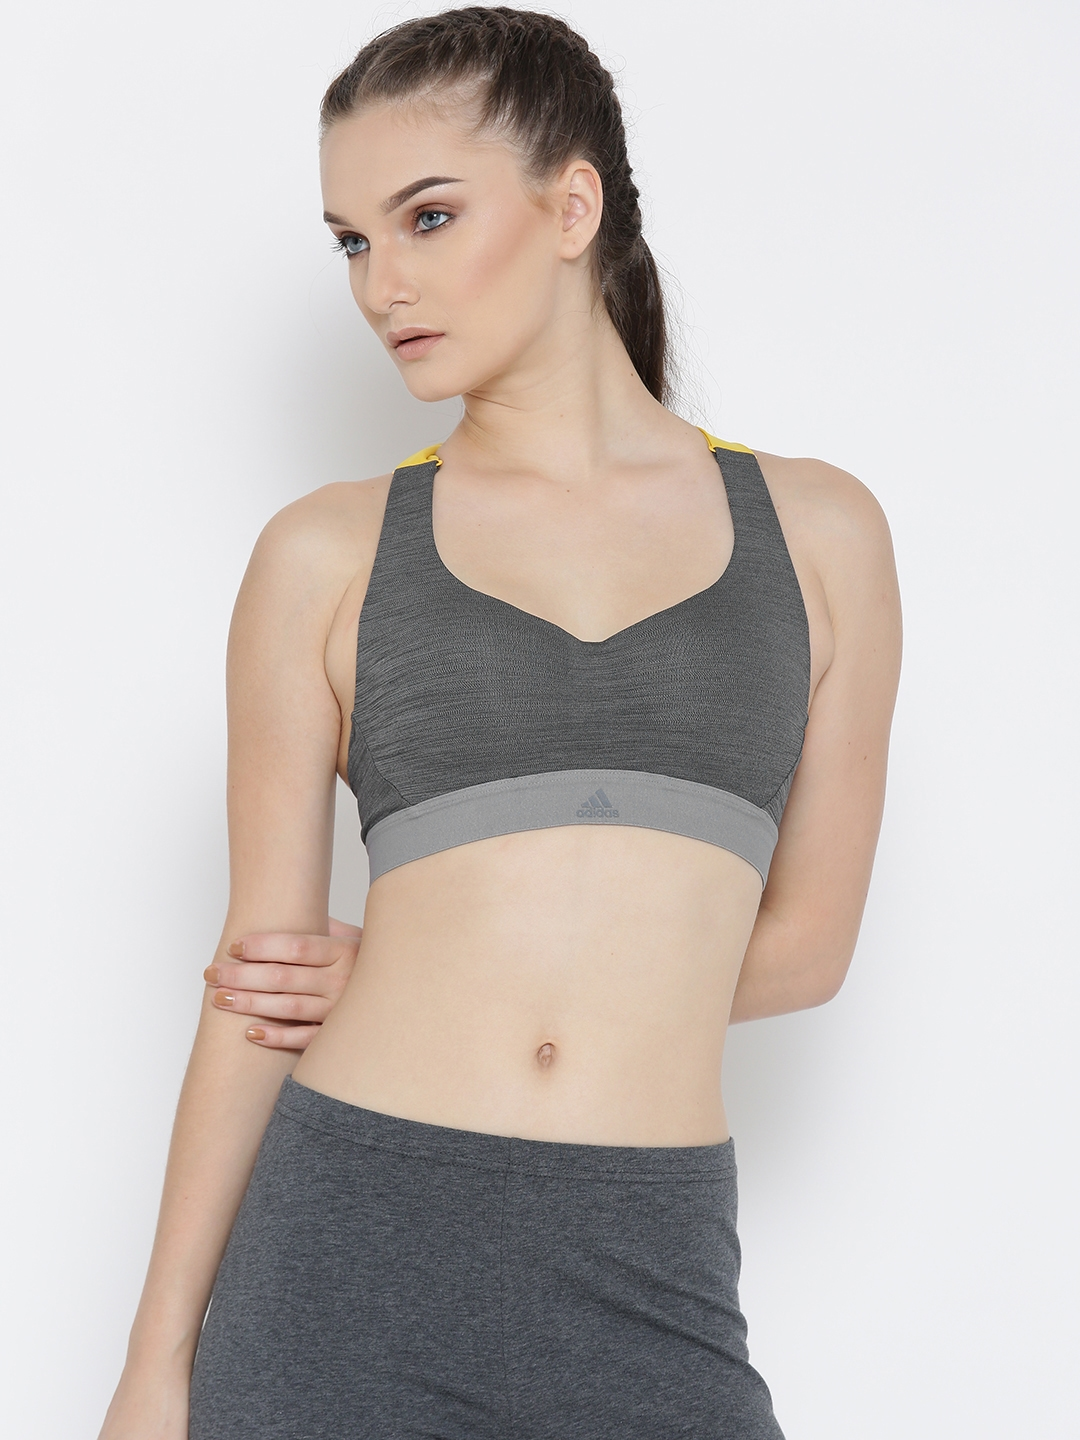 48dde3f1aa9a5 ADIDAS Charcoal Grey   Yellow Stronger for it RacerBack Heather Lightly  Padded Sports Bra BR5229